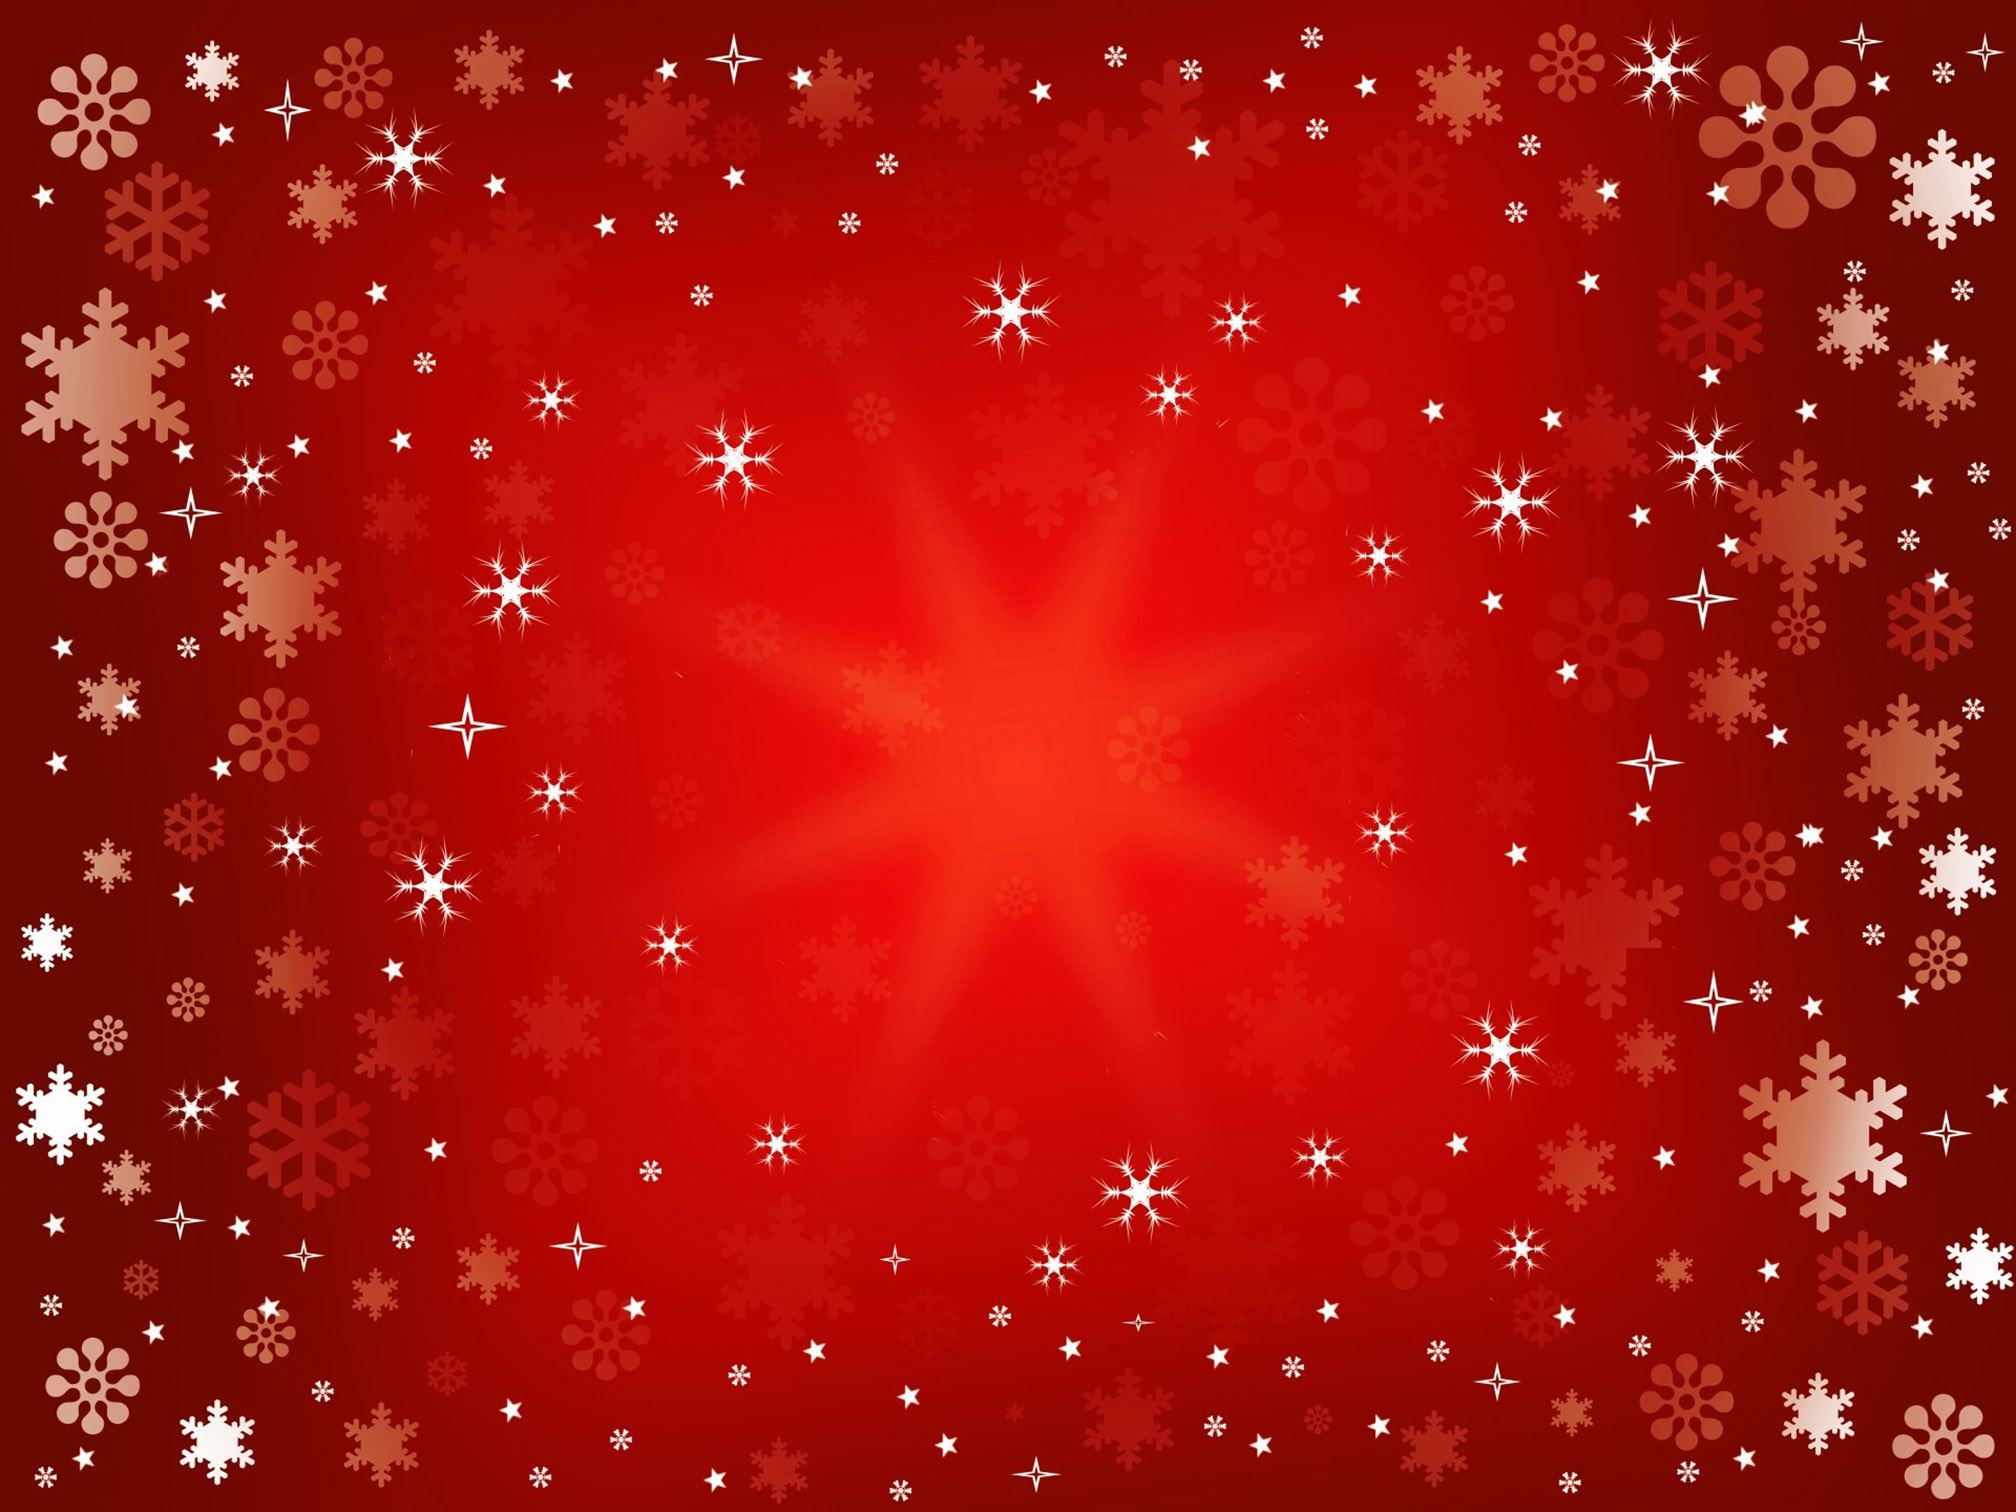 Christmas Background HQ Desktop Wallpaper 16308 - Baltana